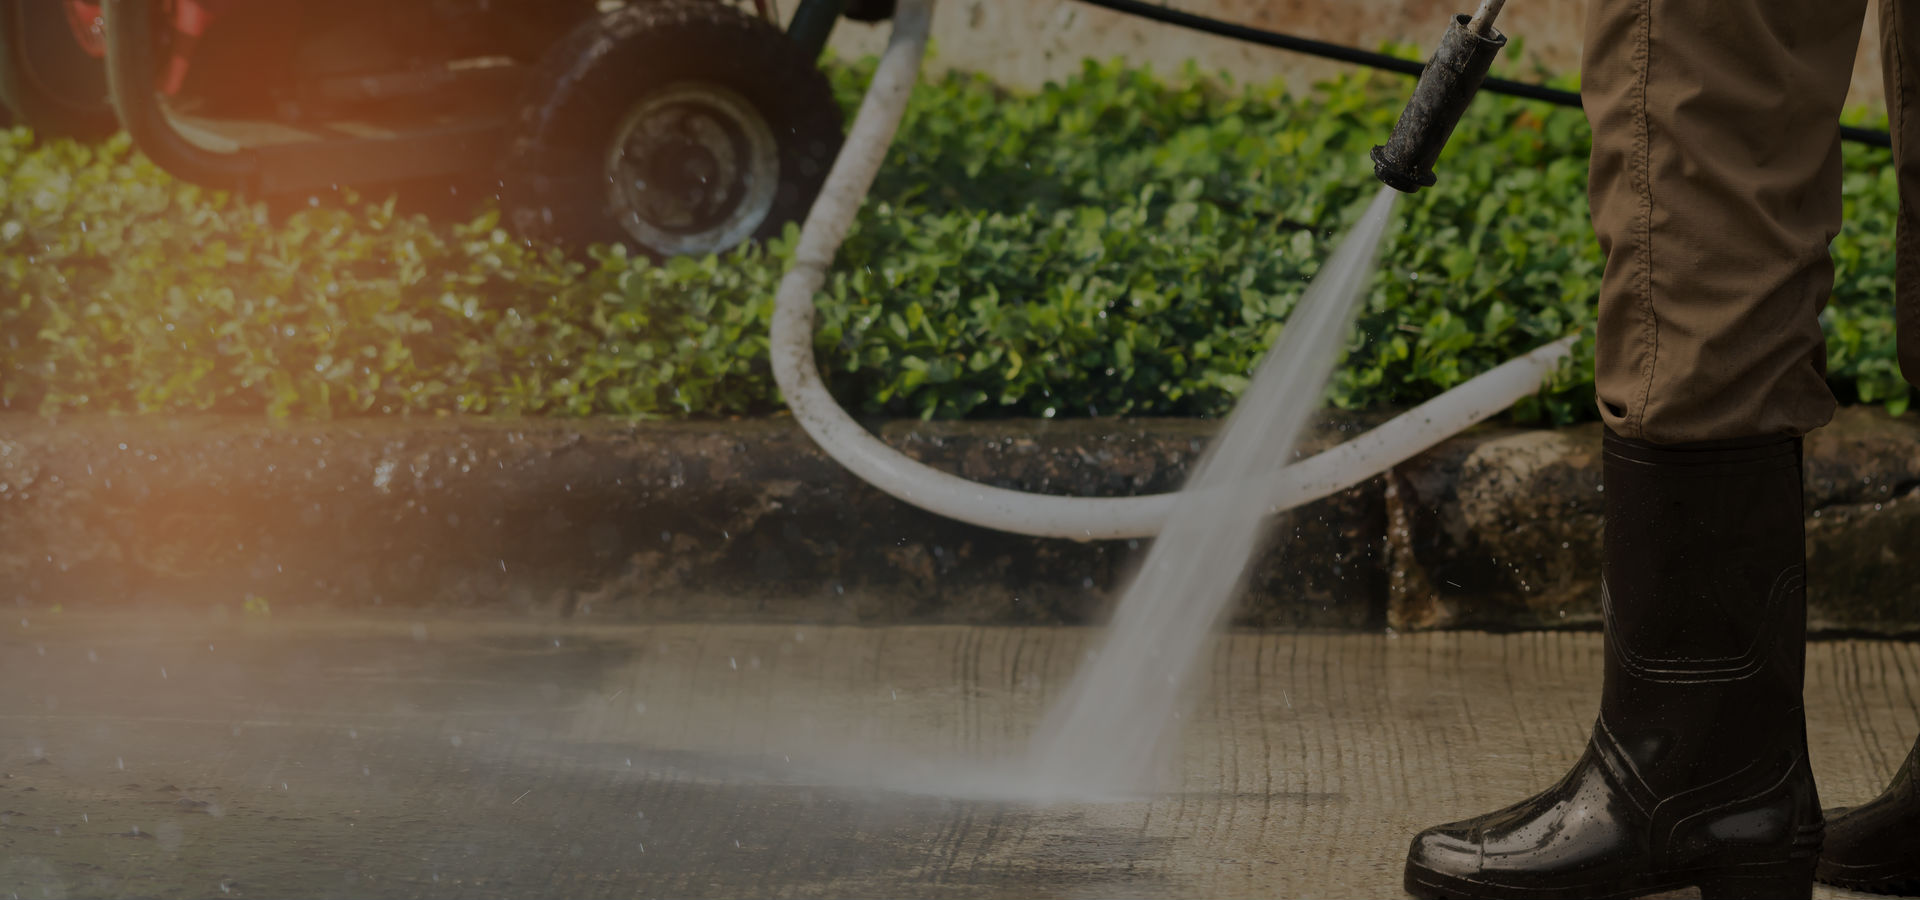 High Pressure Commercial Jet Washing